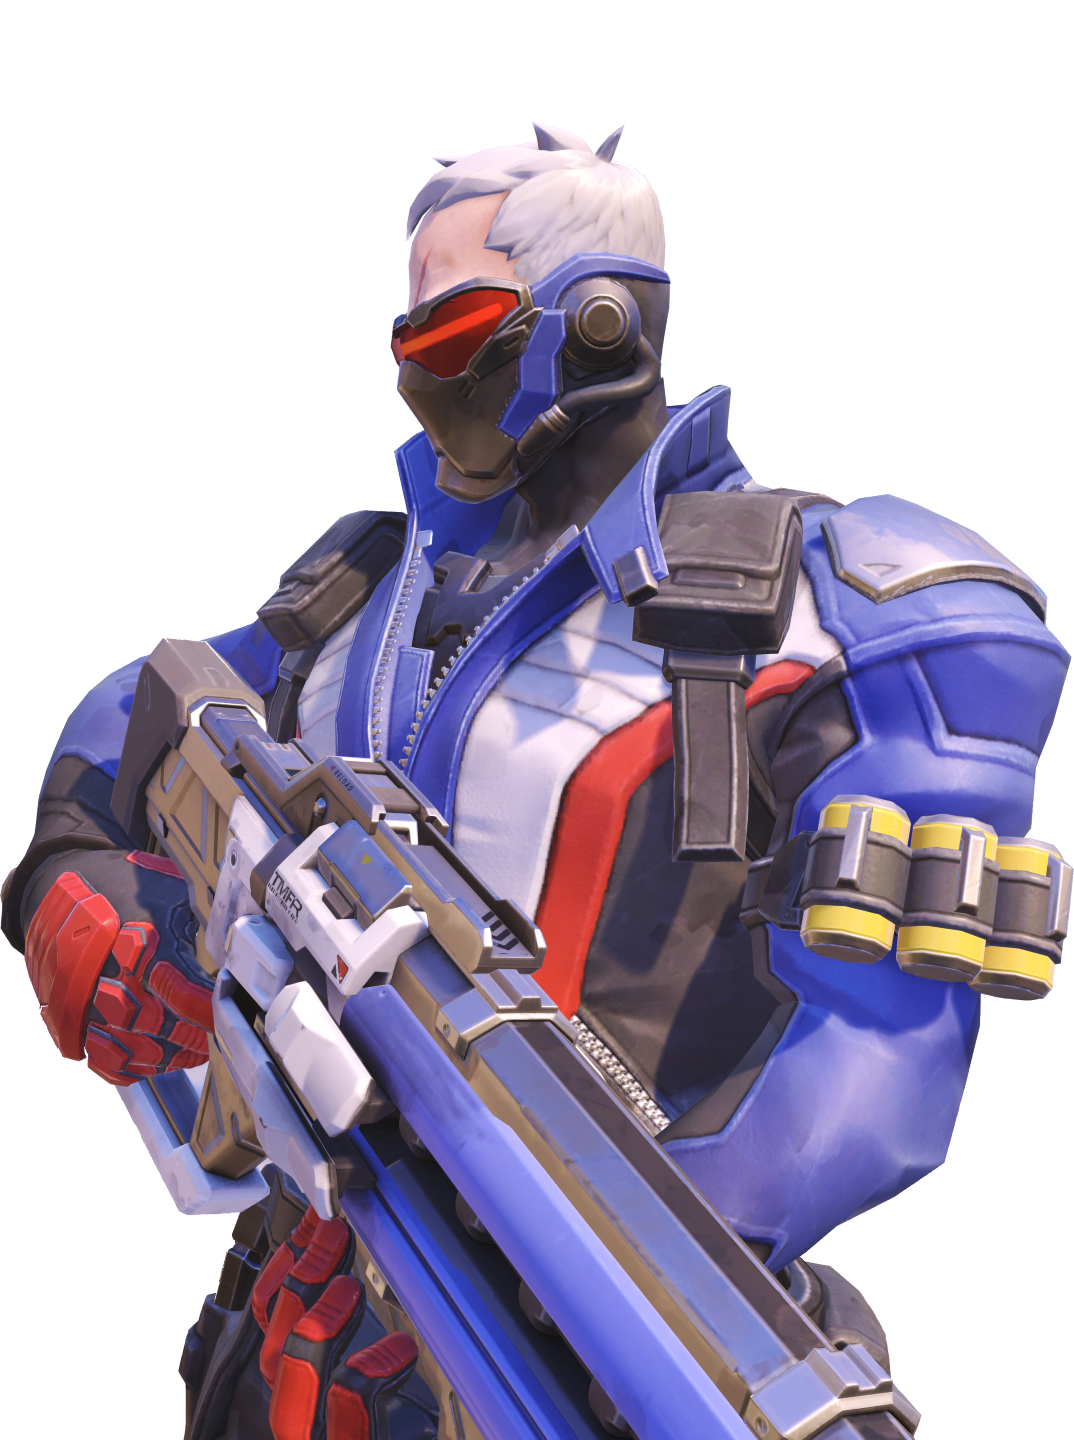 Image deadliest fiction wiki. Overwatch soldier 76 png